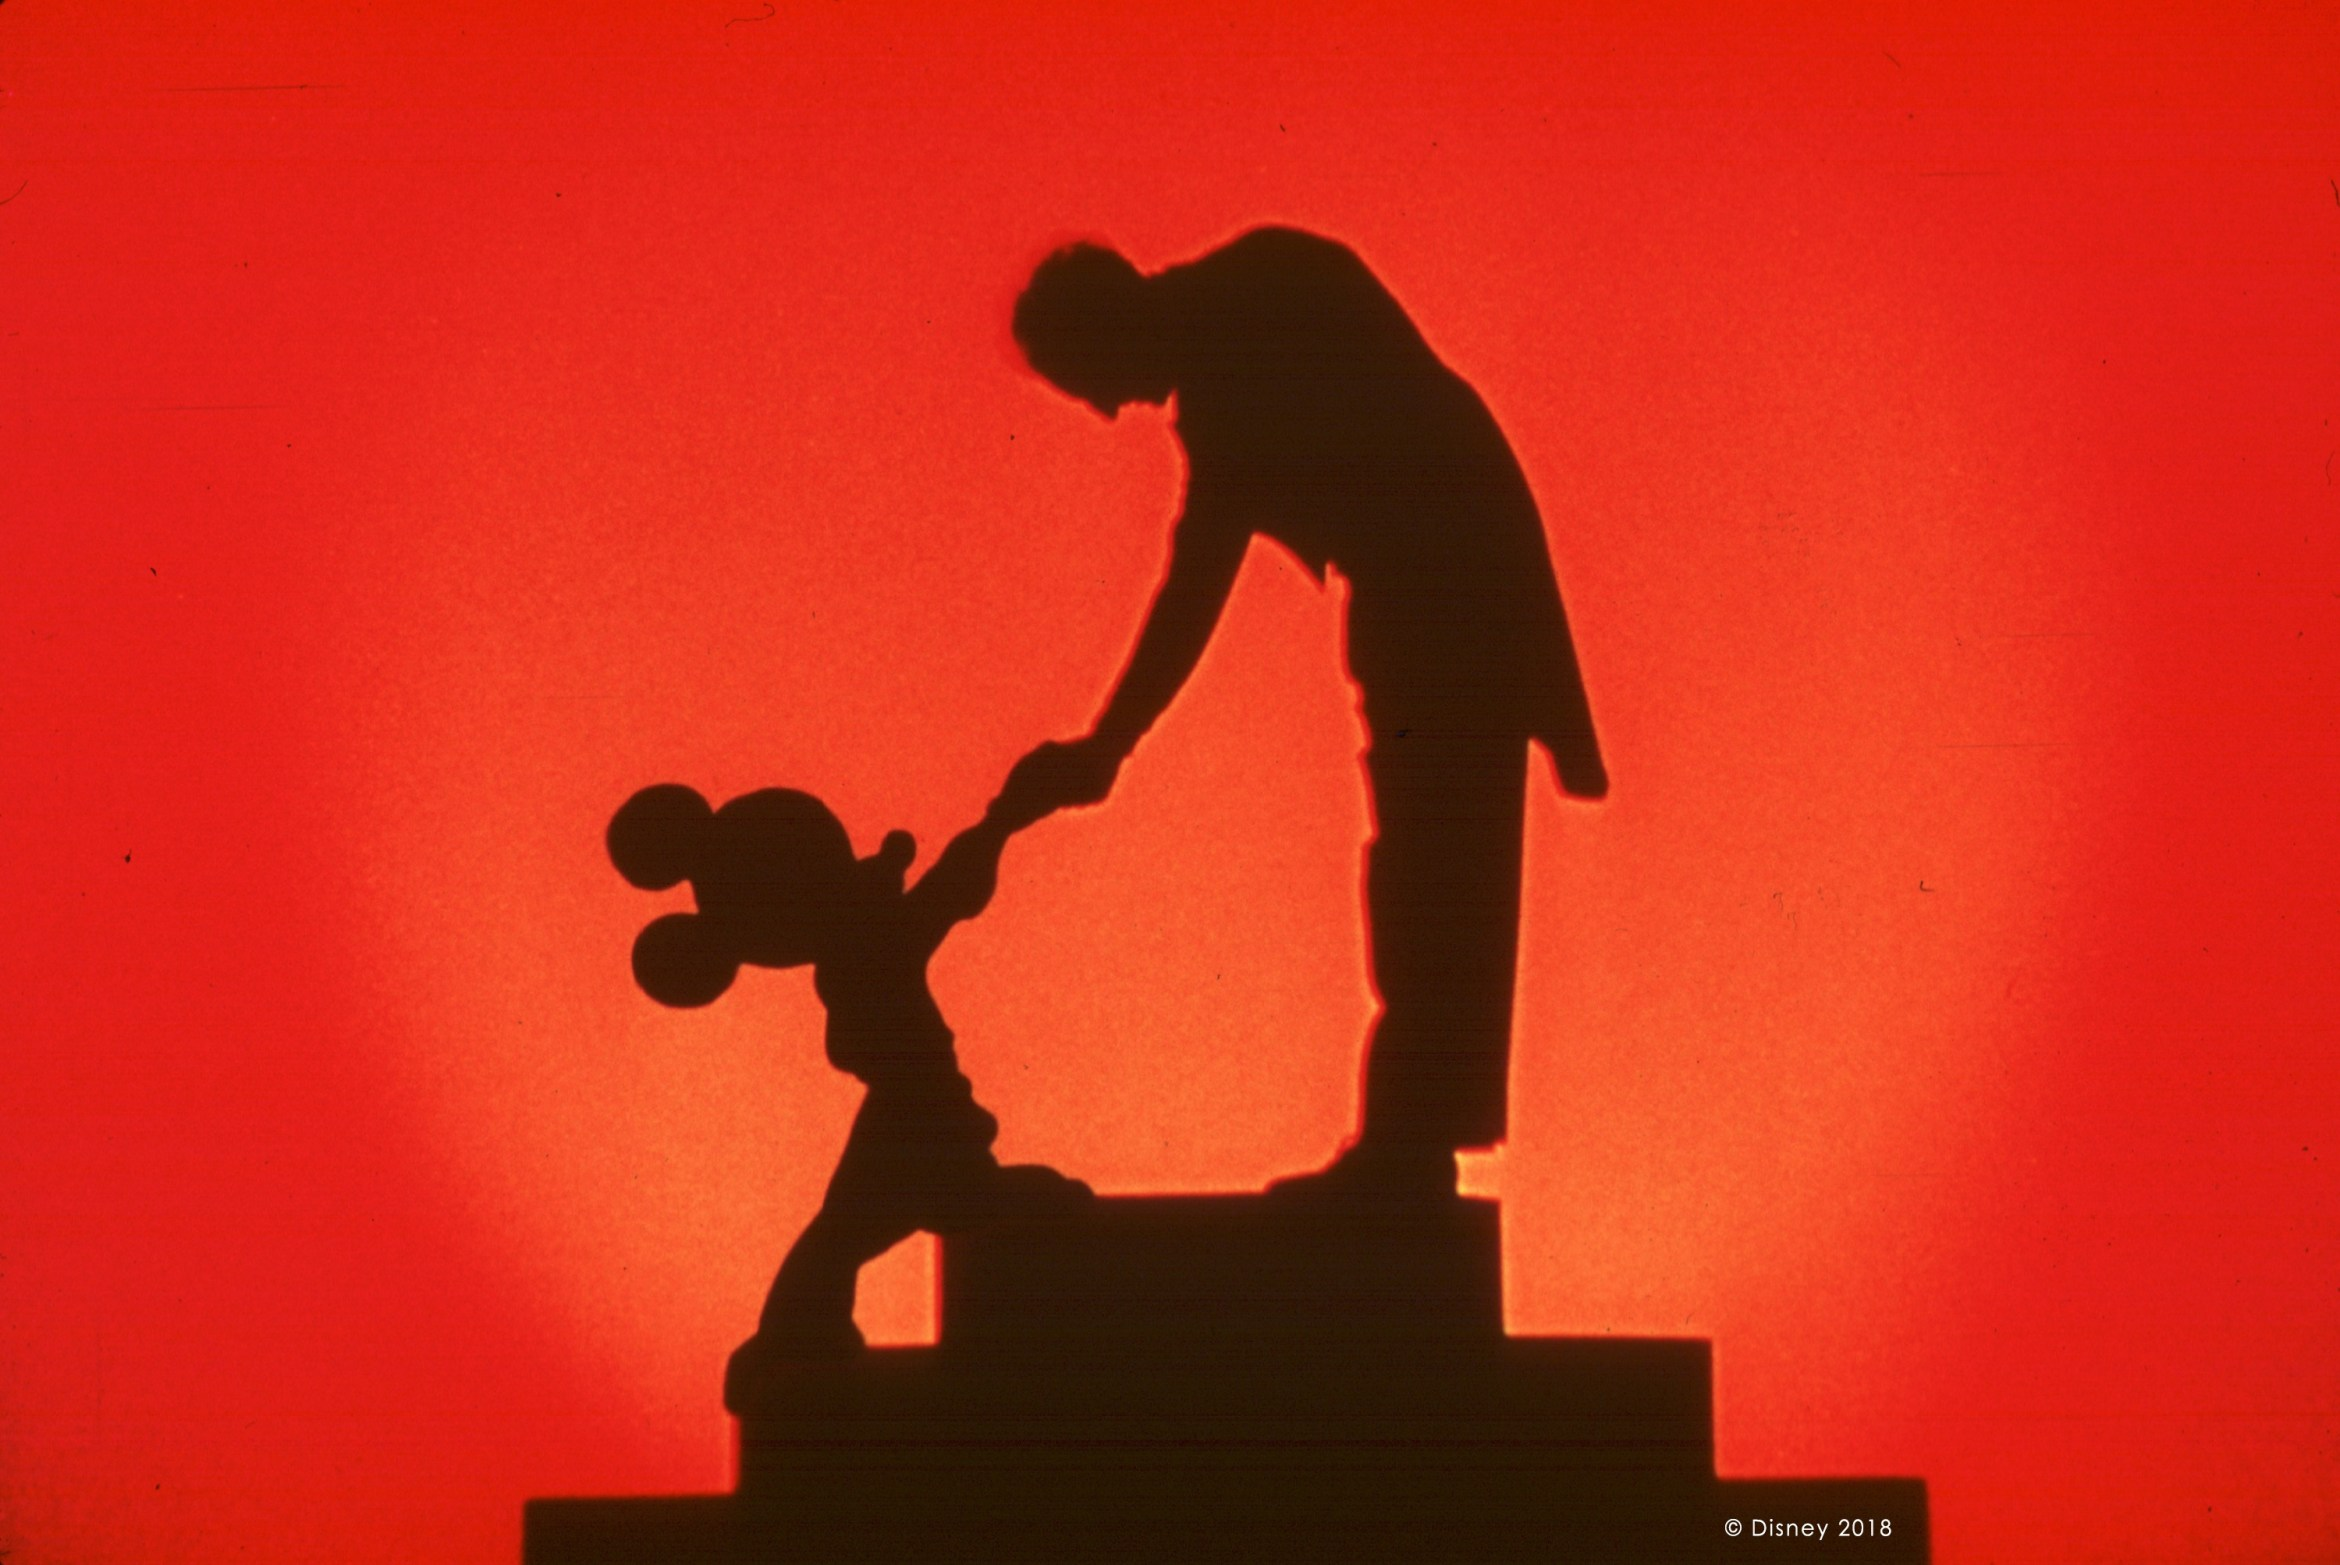 Artwork-of-Sorcerer's-Apprentice-Mickey-from-Walt-Disney's-Fantasia-which-provided-the-inspiration-for-The-Vaults-presents-Sounds-and-Sorcery-celebrating-Disney-Fantasia..jpg